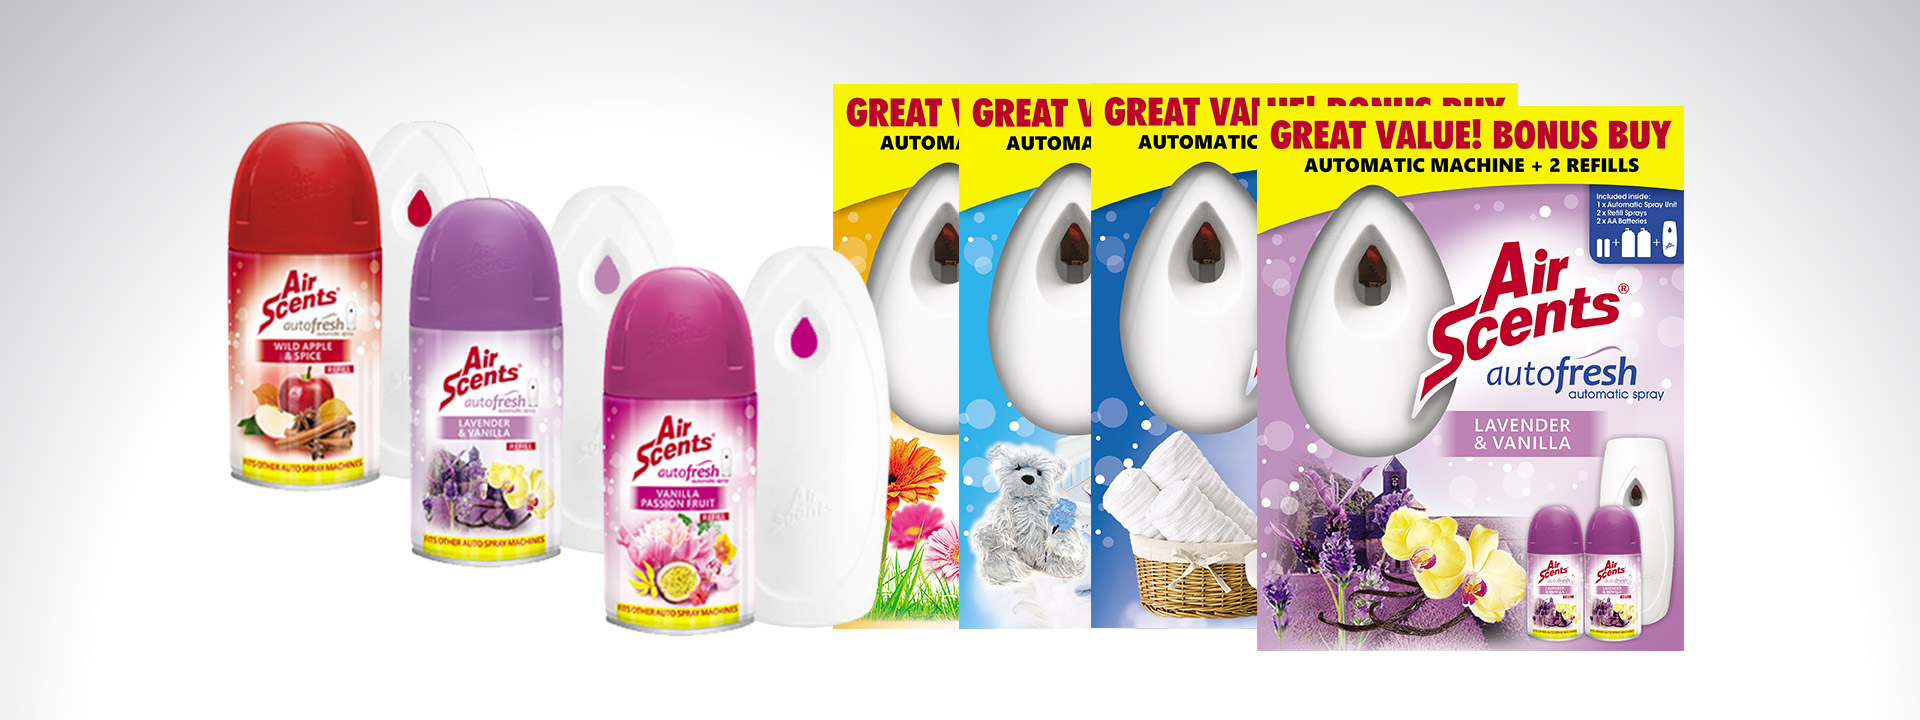 Air Scents Autofresh Machines and Refills